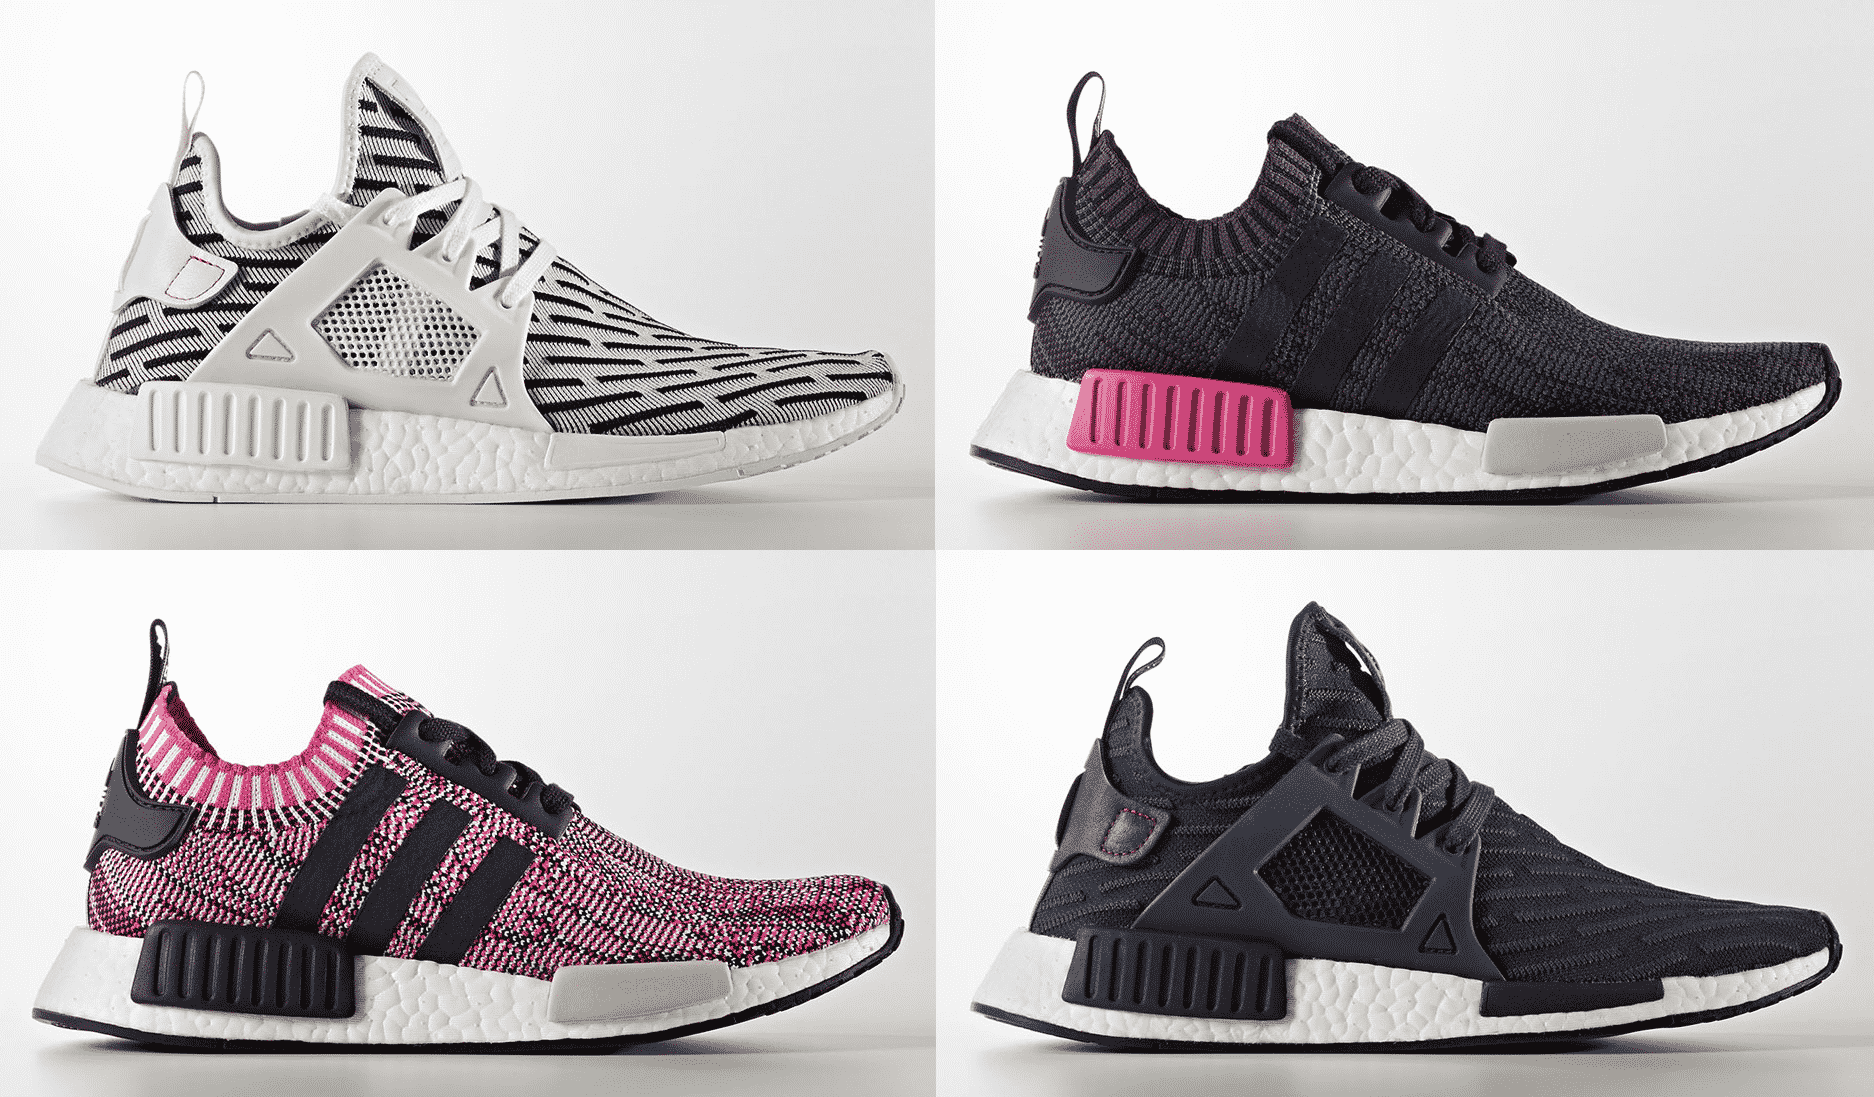 Adidas Fall Savings: Up to 50% off the Latest NMD Shoes